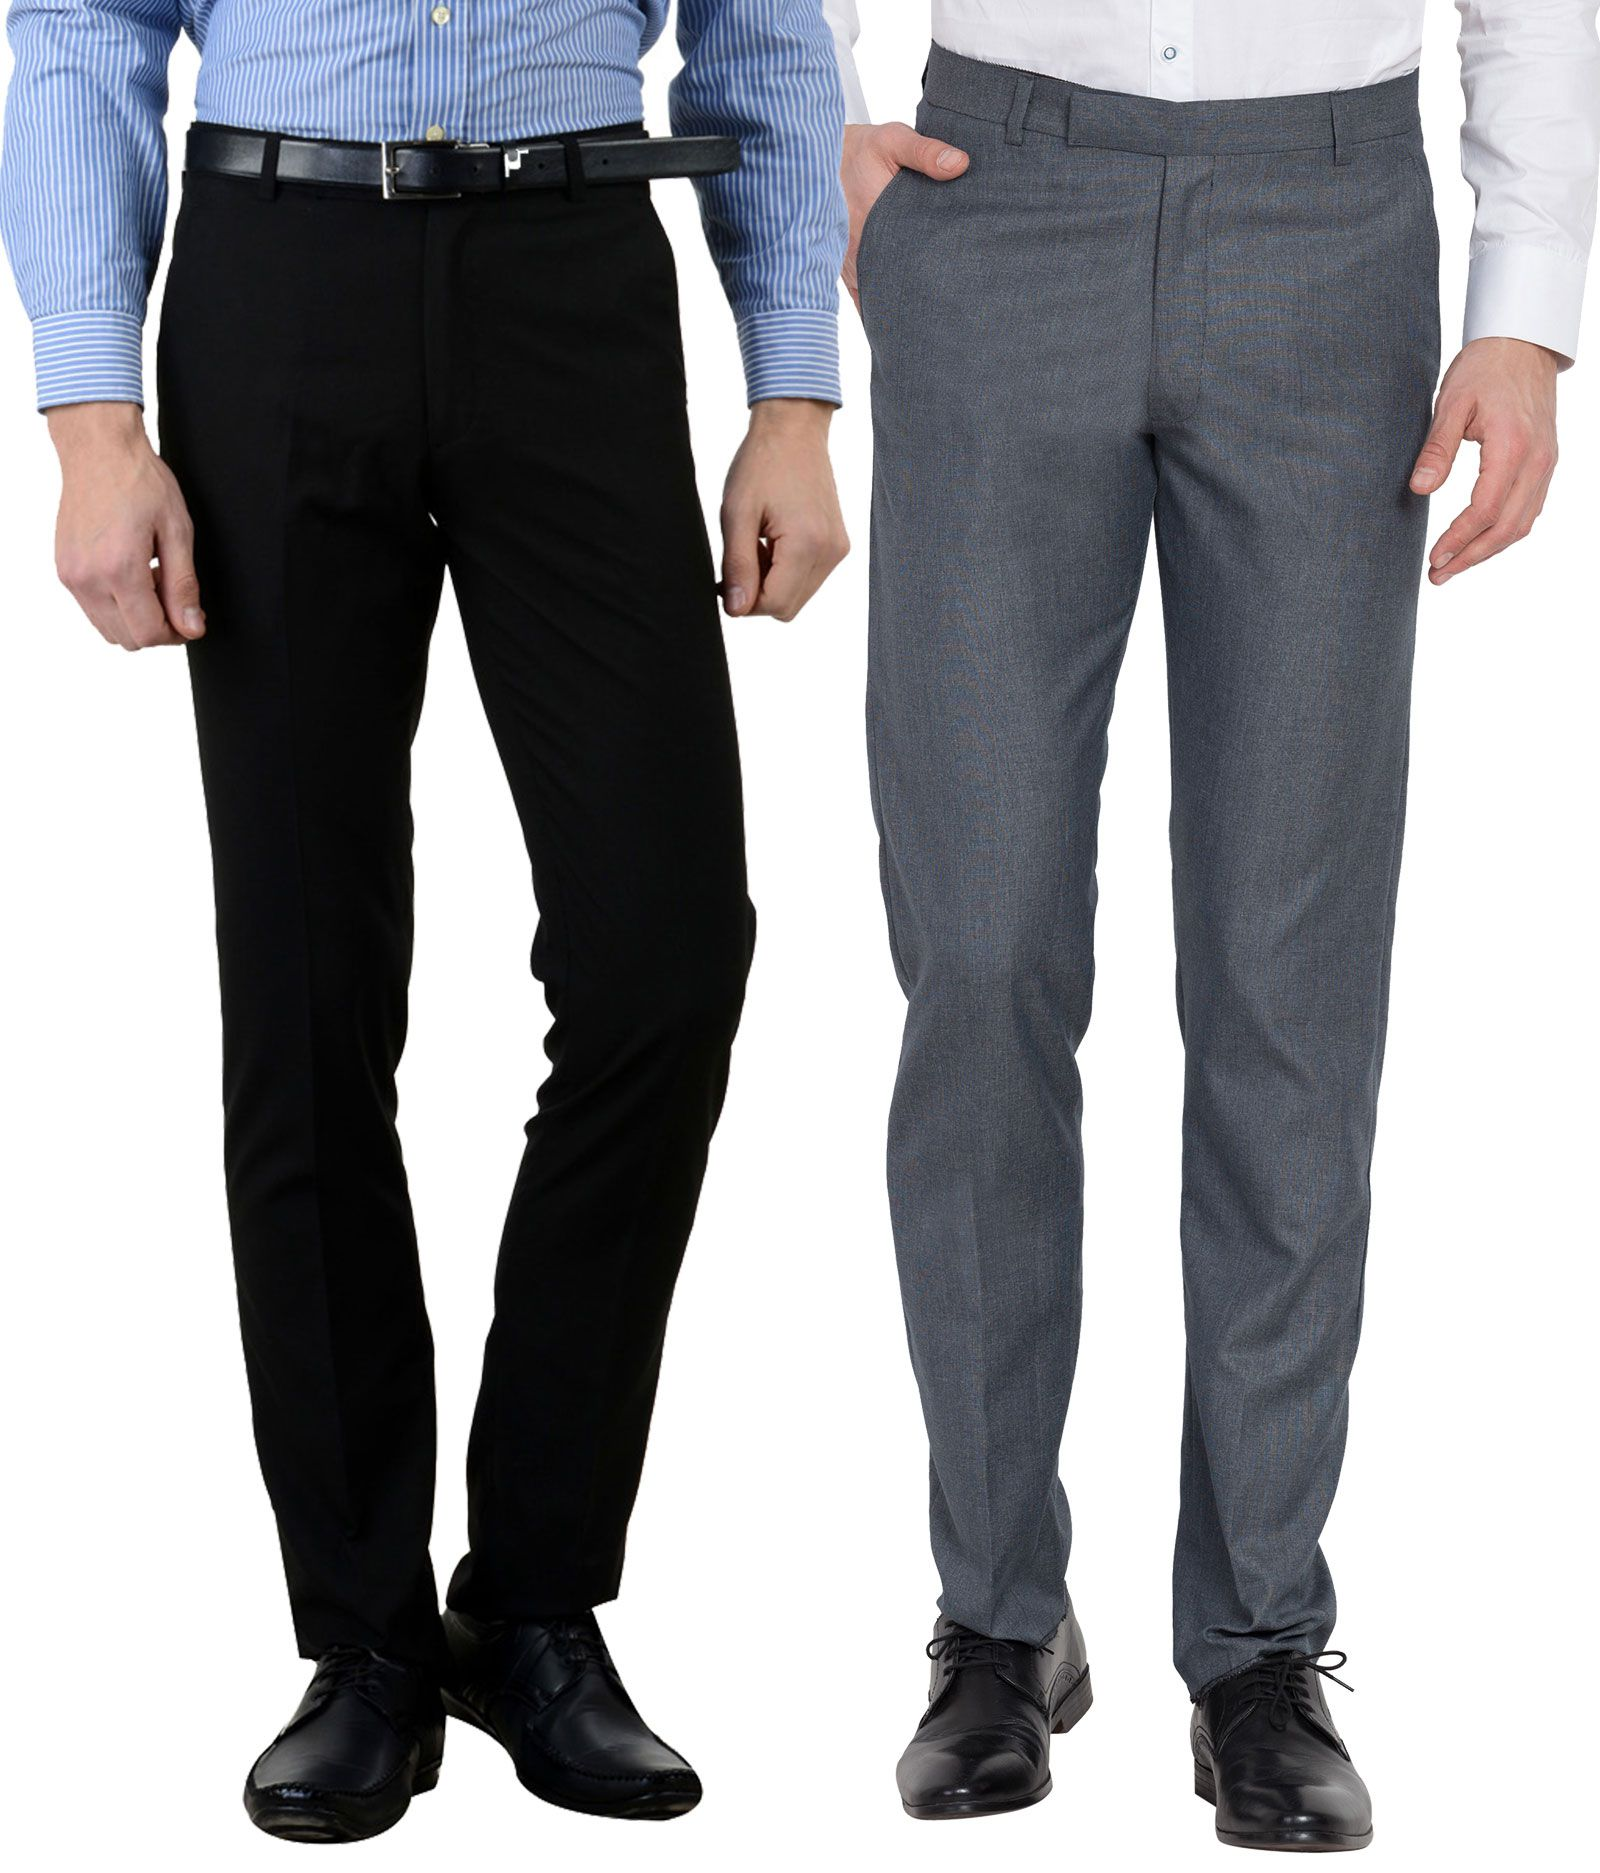 Cliths Multicolored Slim -Fit Flat Trousers